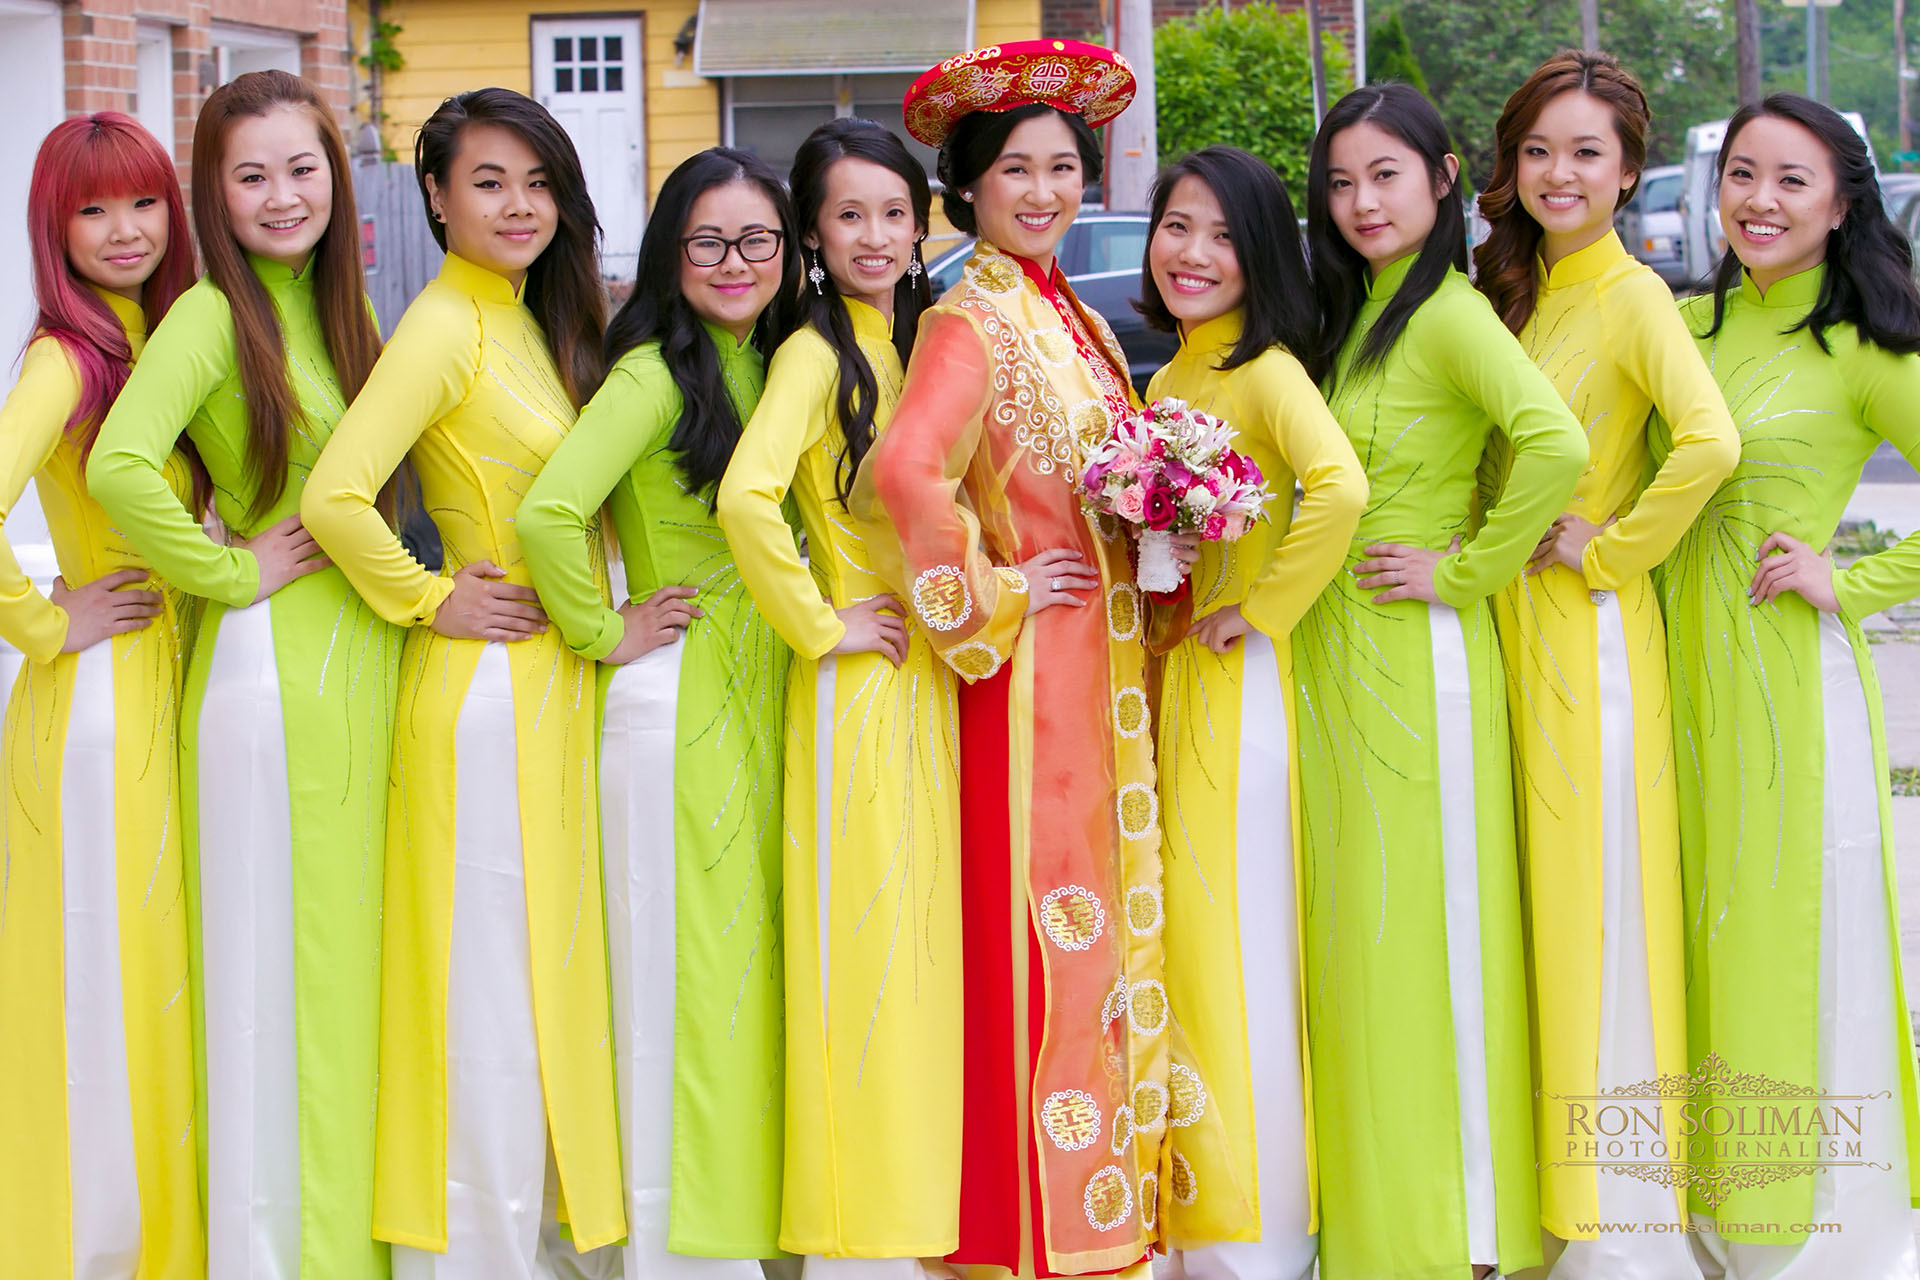 VIETNAMESE WEDDING PHOTOS